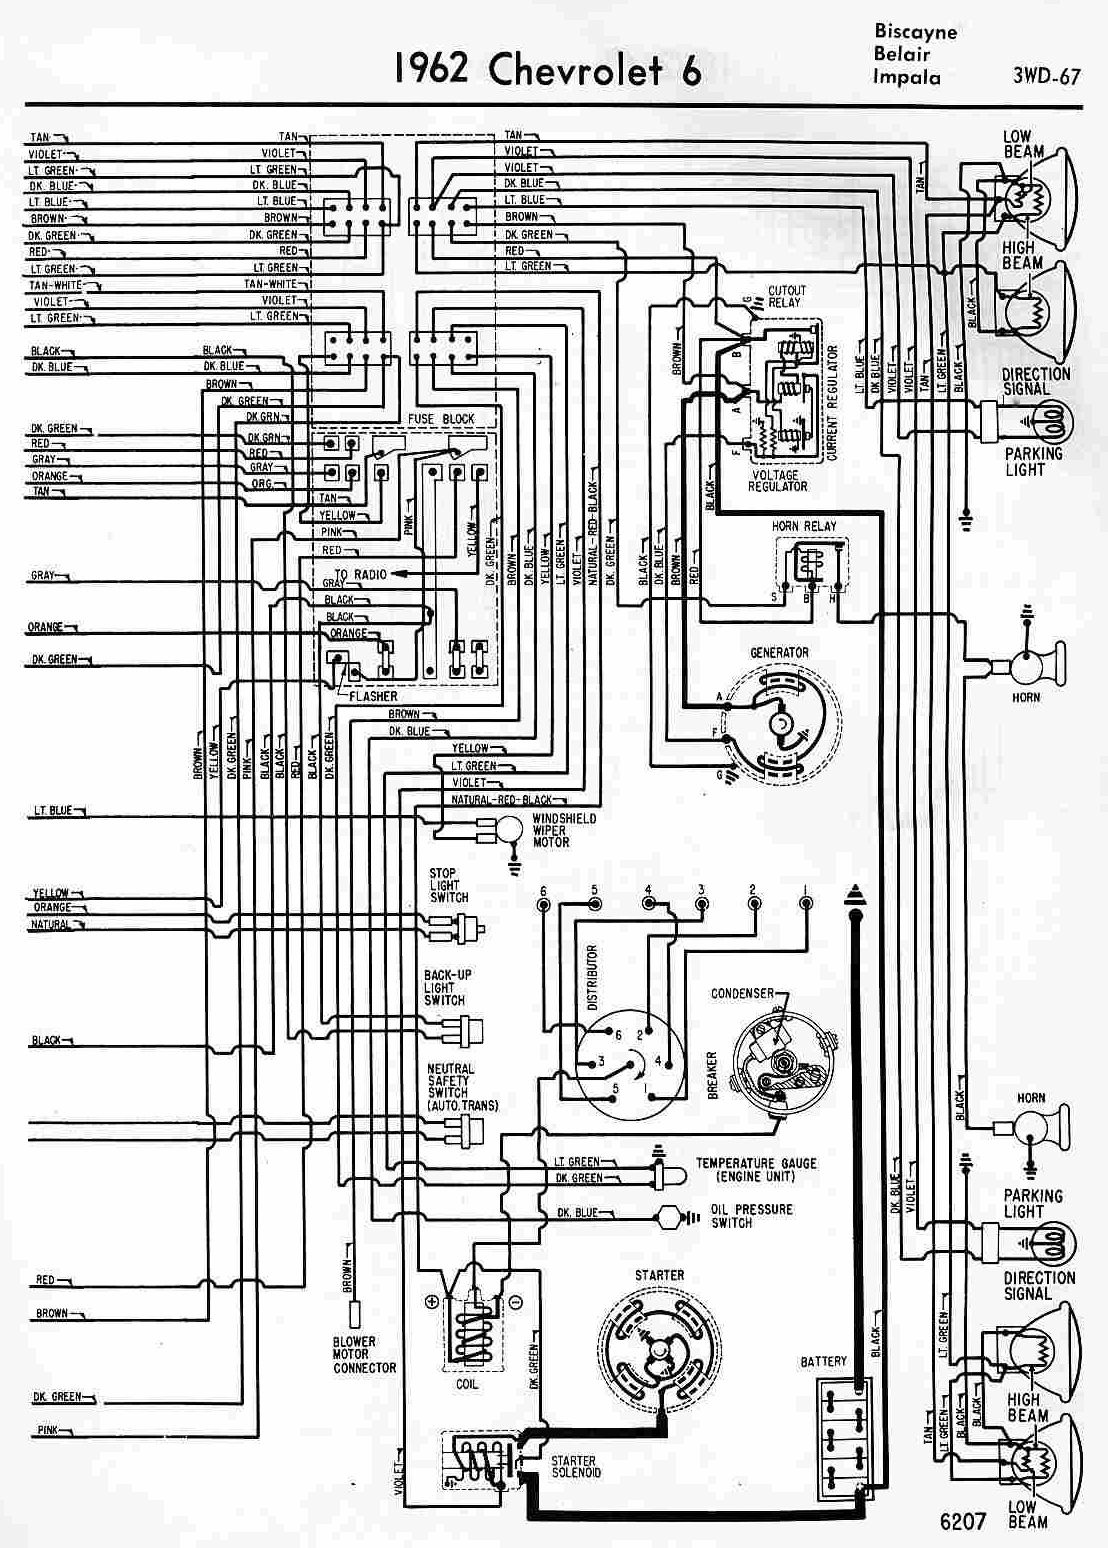 1962+Chevrolet+6+Biscayne%252C+Belair+and+Impala+Wiring+Diagram  Impala Wiring Diagram Window on